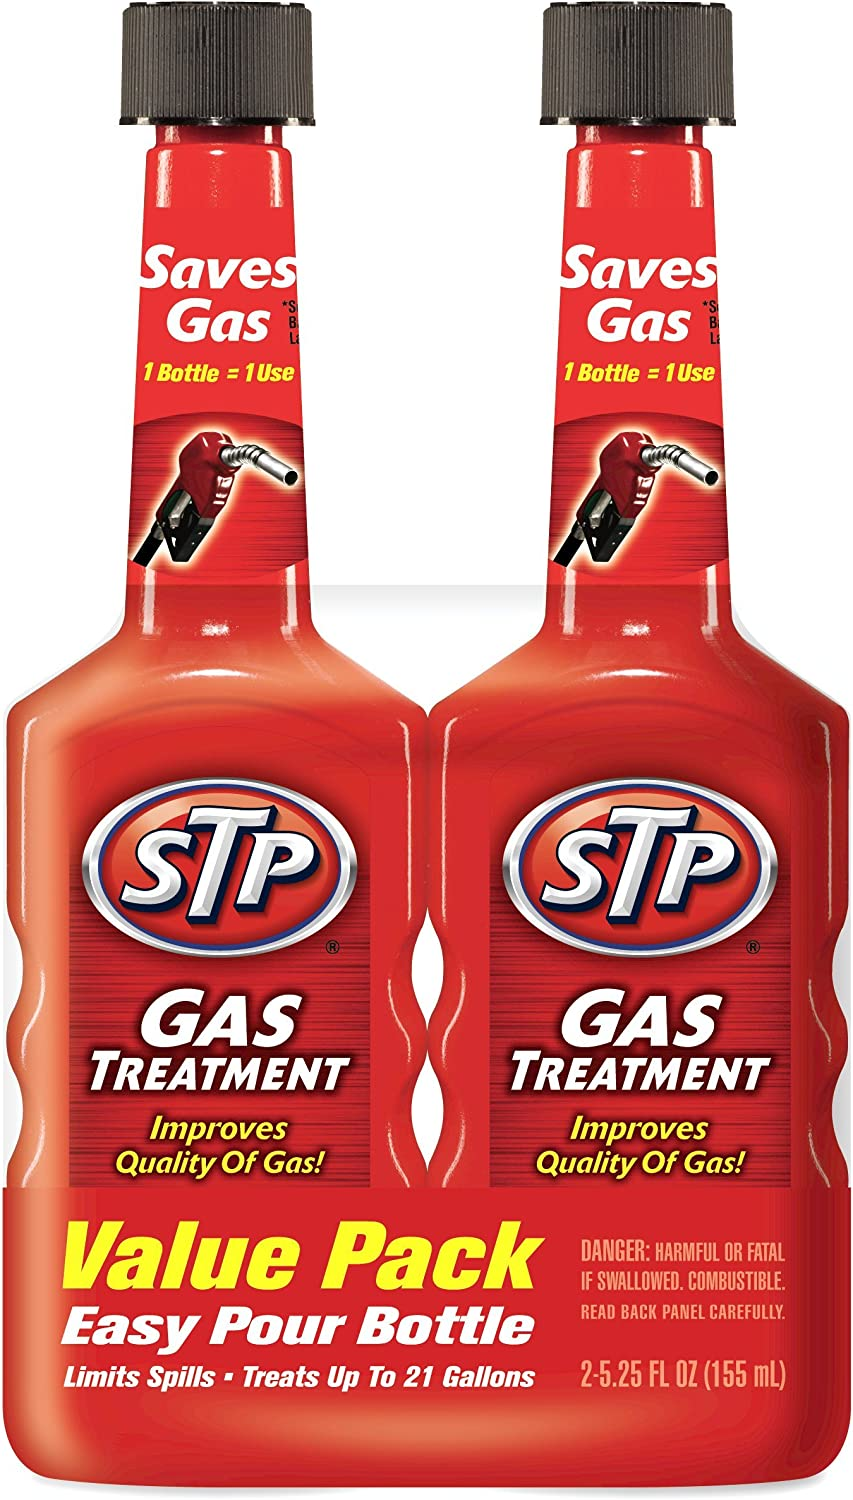 STP Gas Treatment